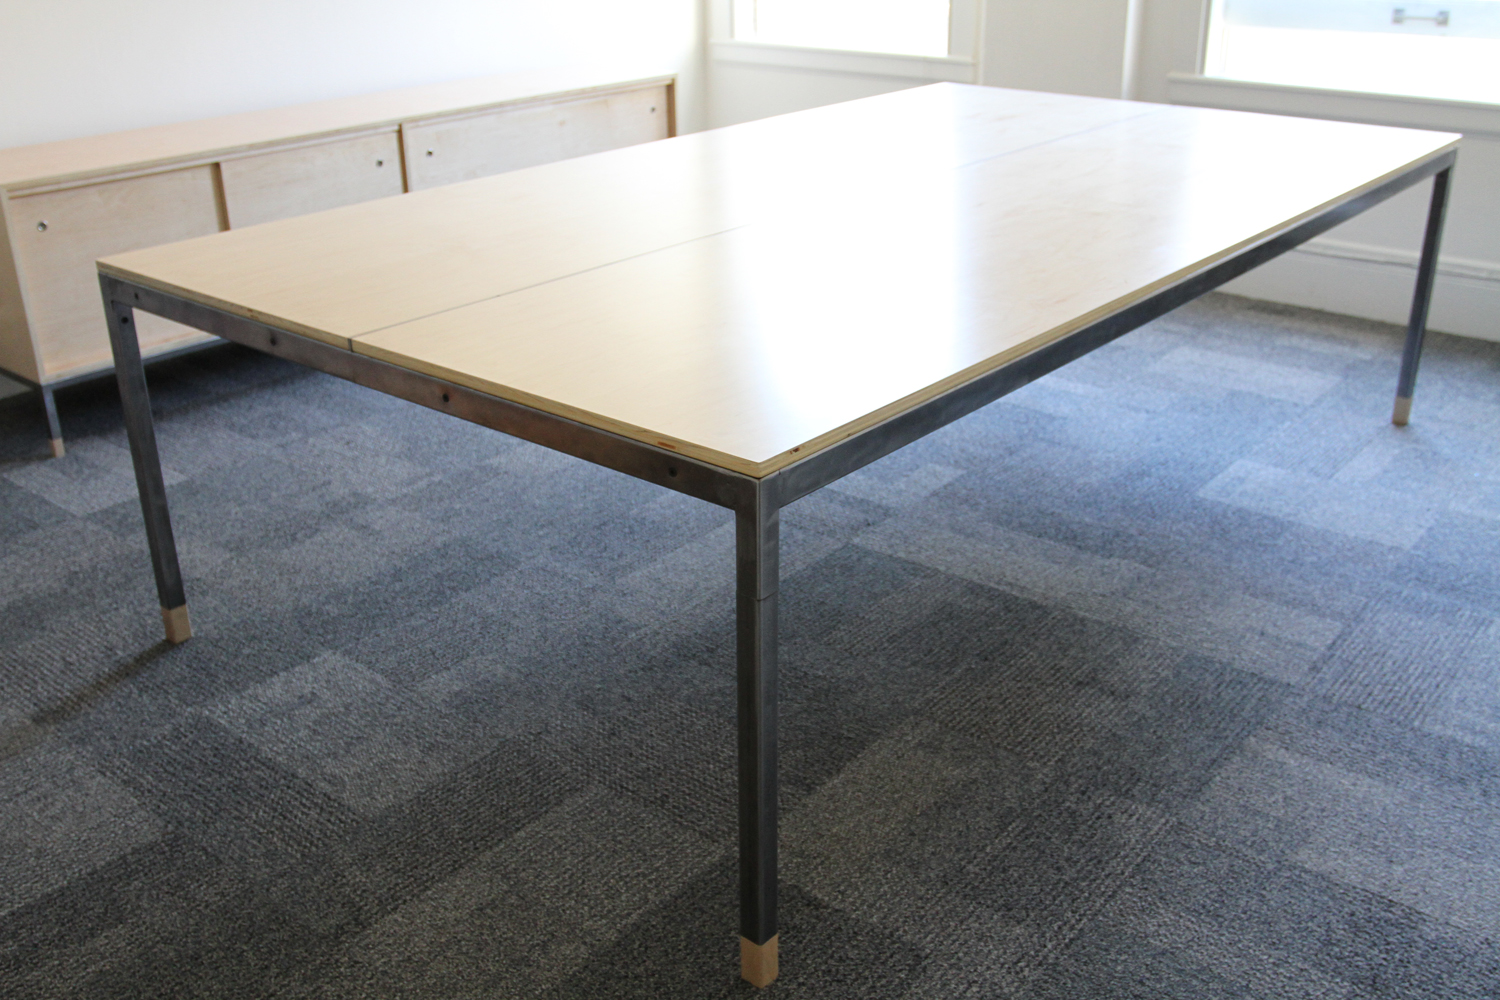 conferencetable_01.jpg